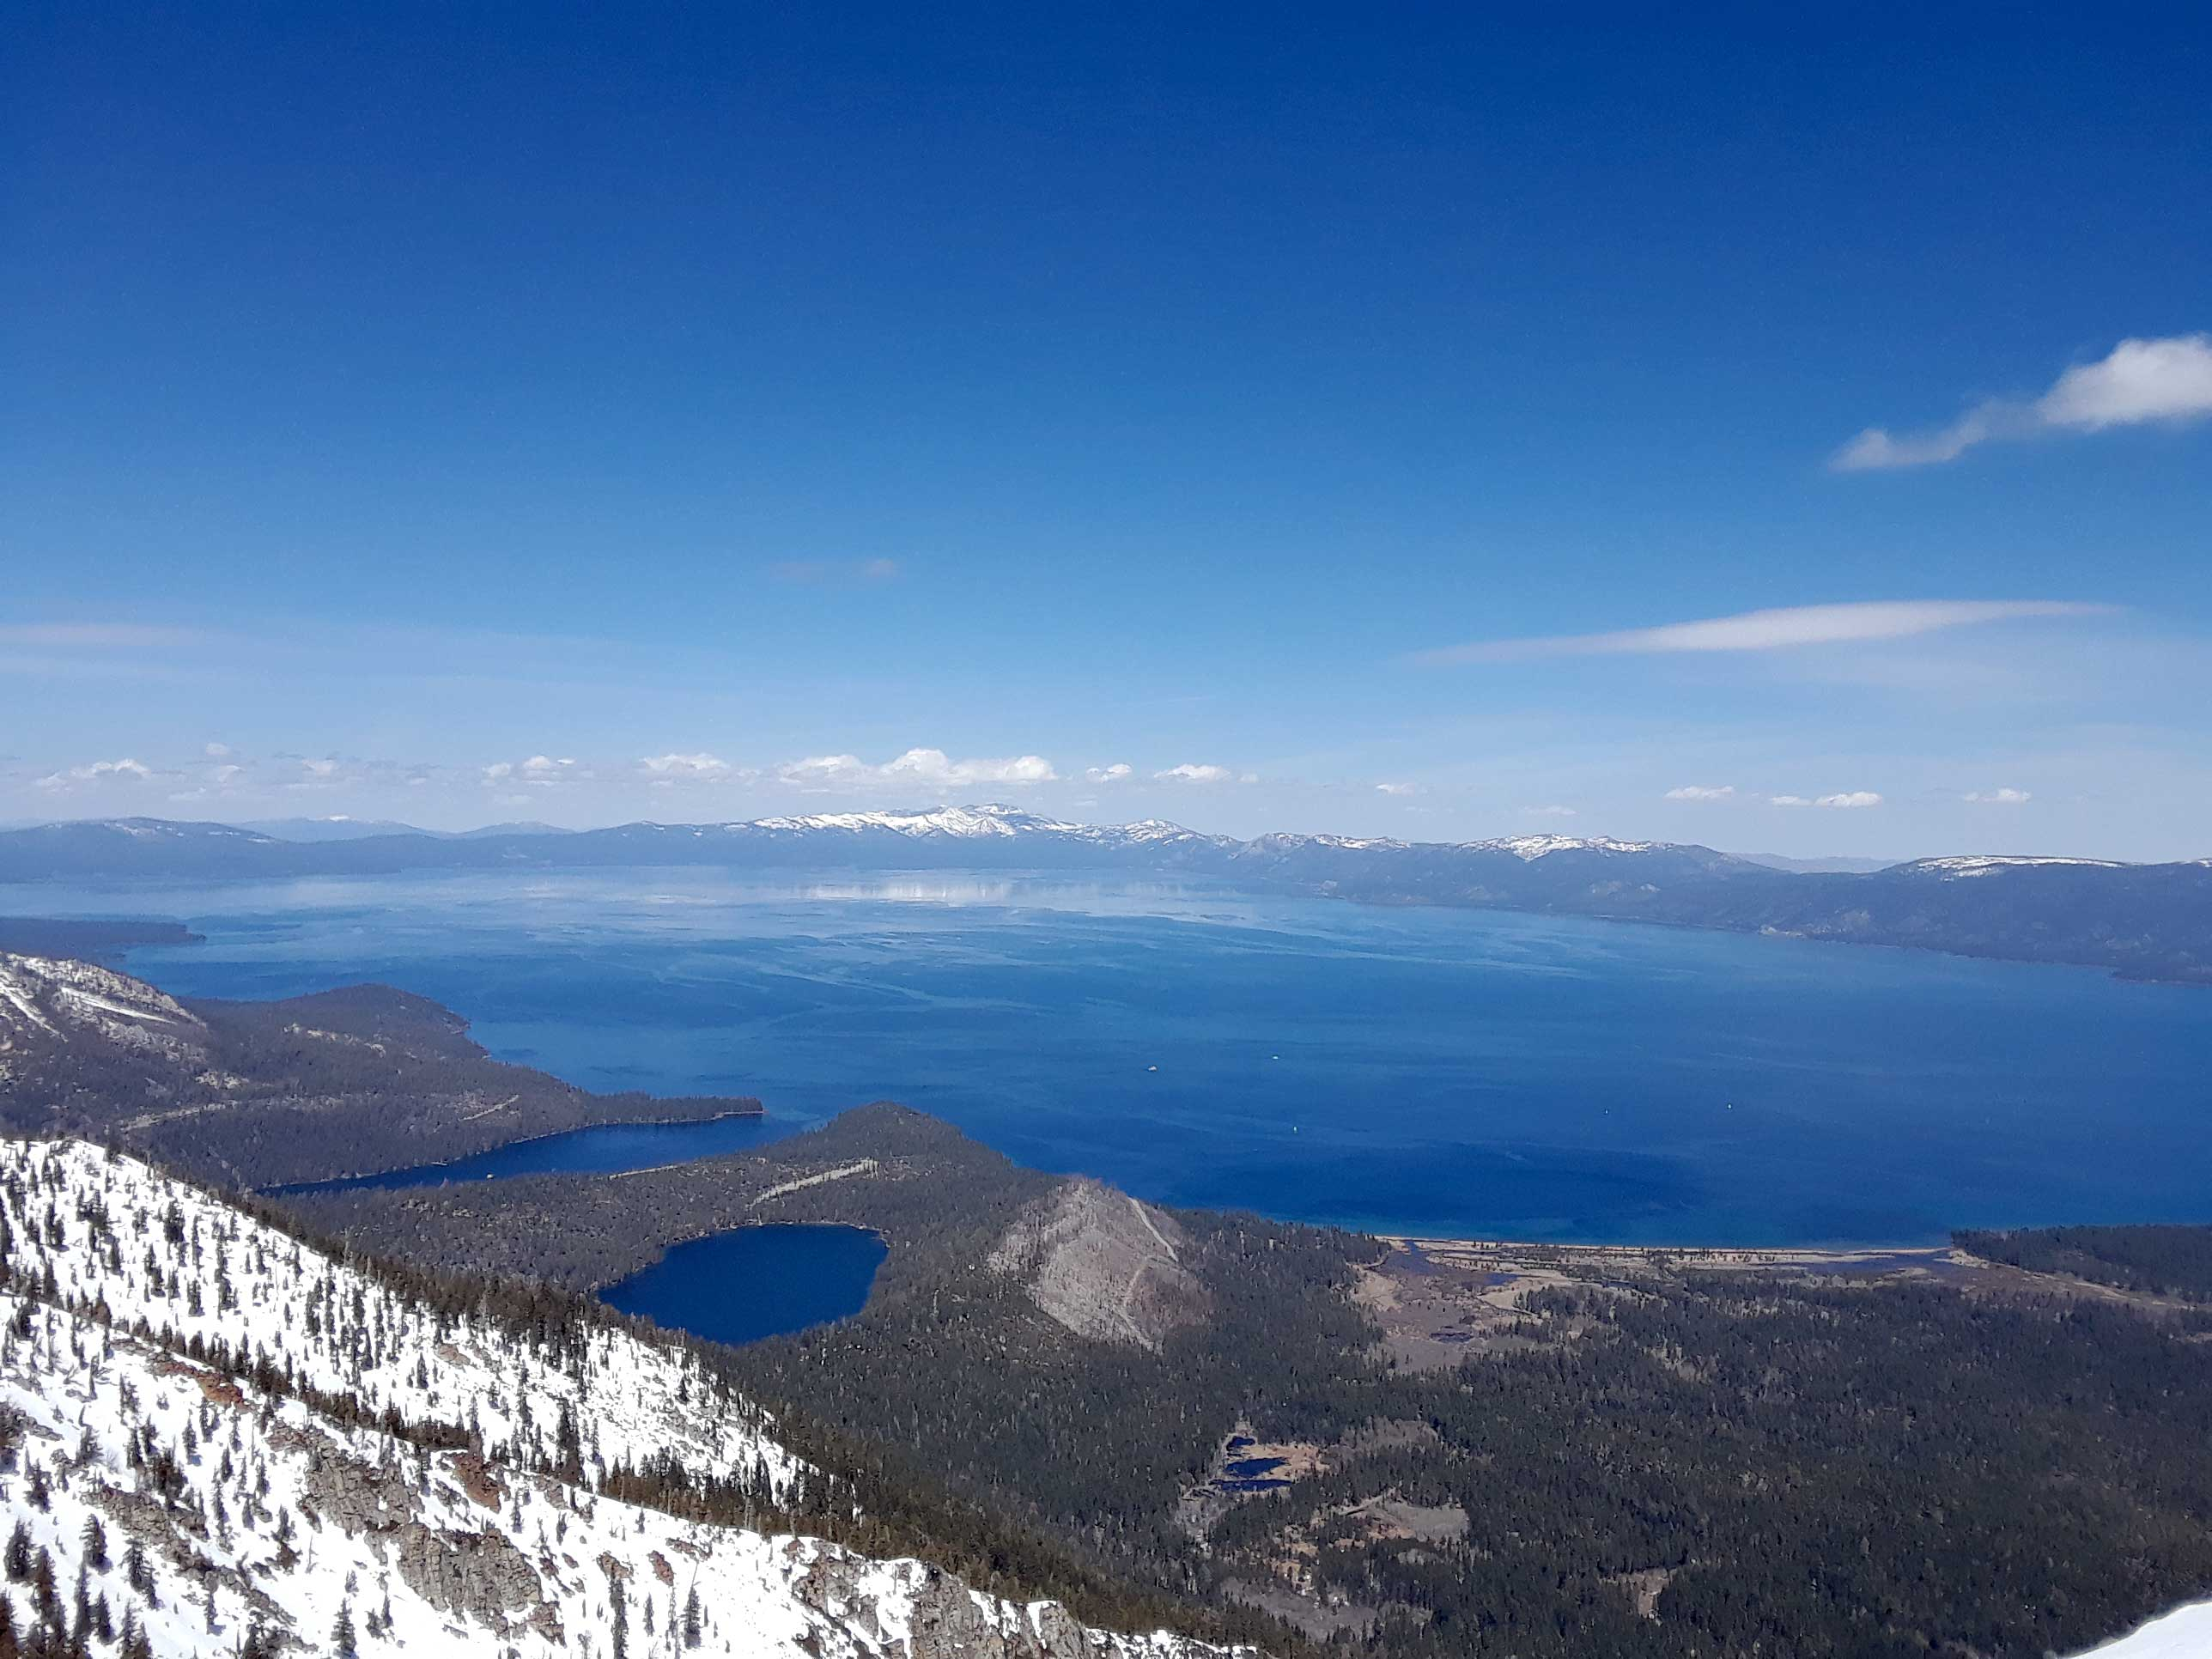 Tallac Mt has the best views of Lake Tahoe